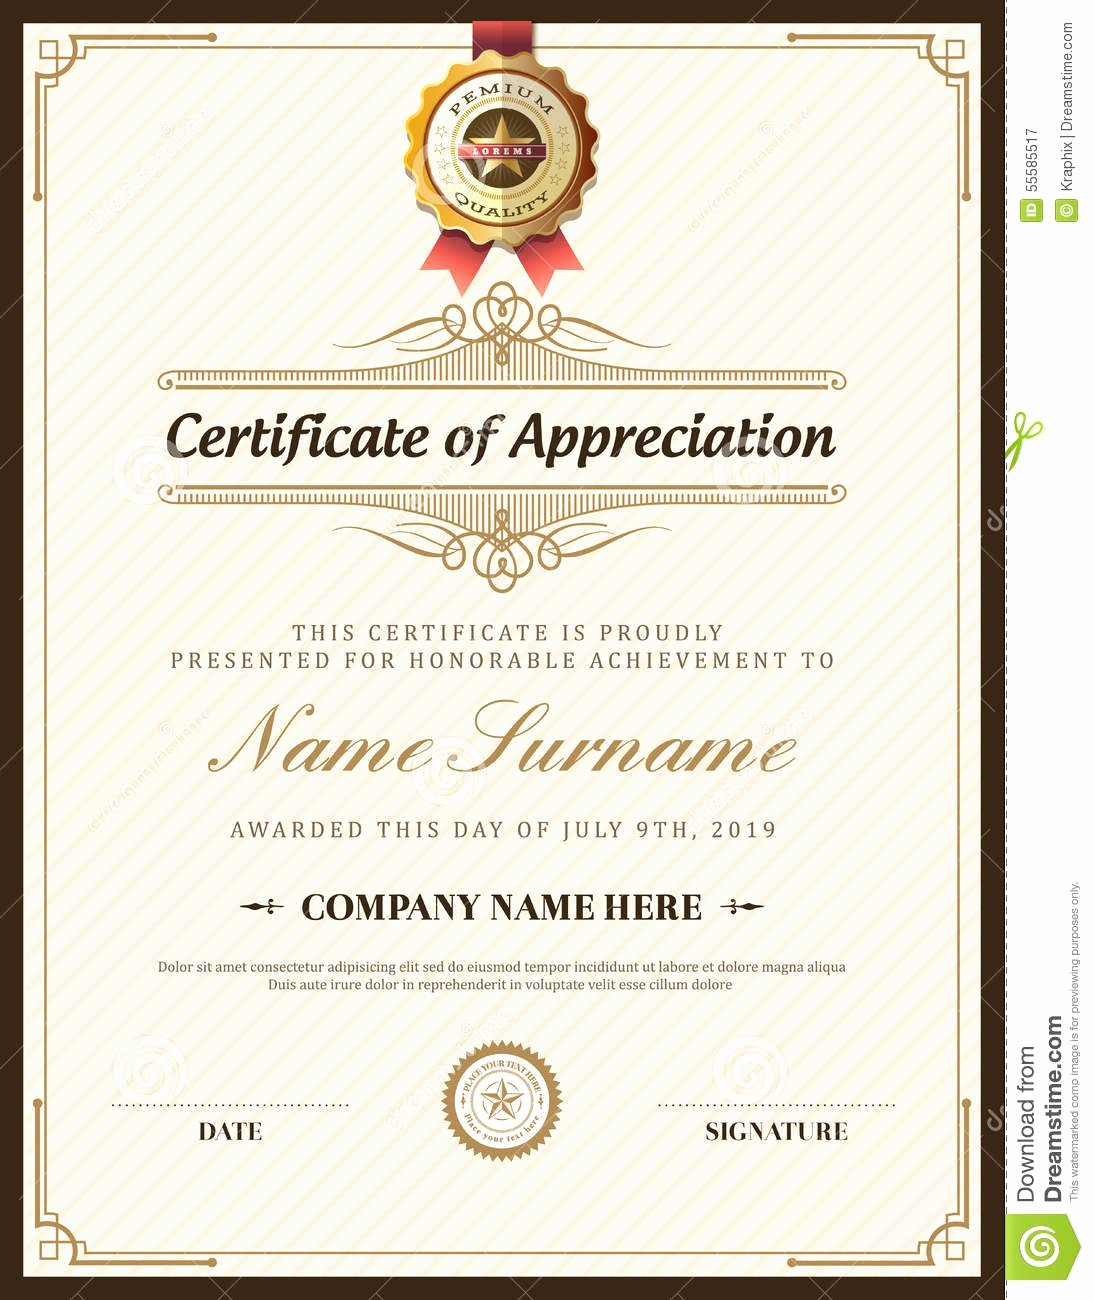 stock illustration vintage retro frame certificate background template design image